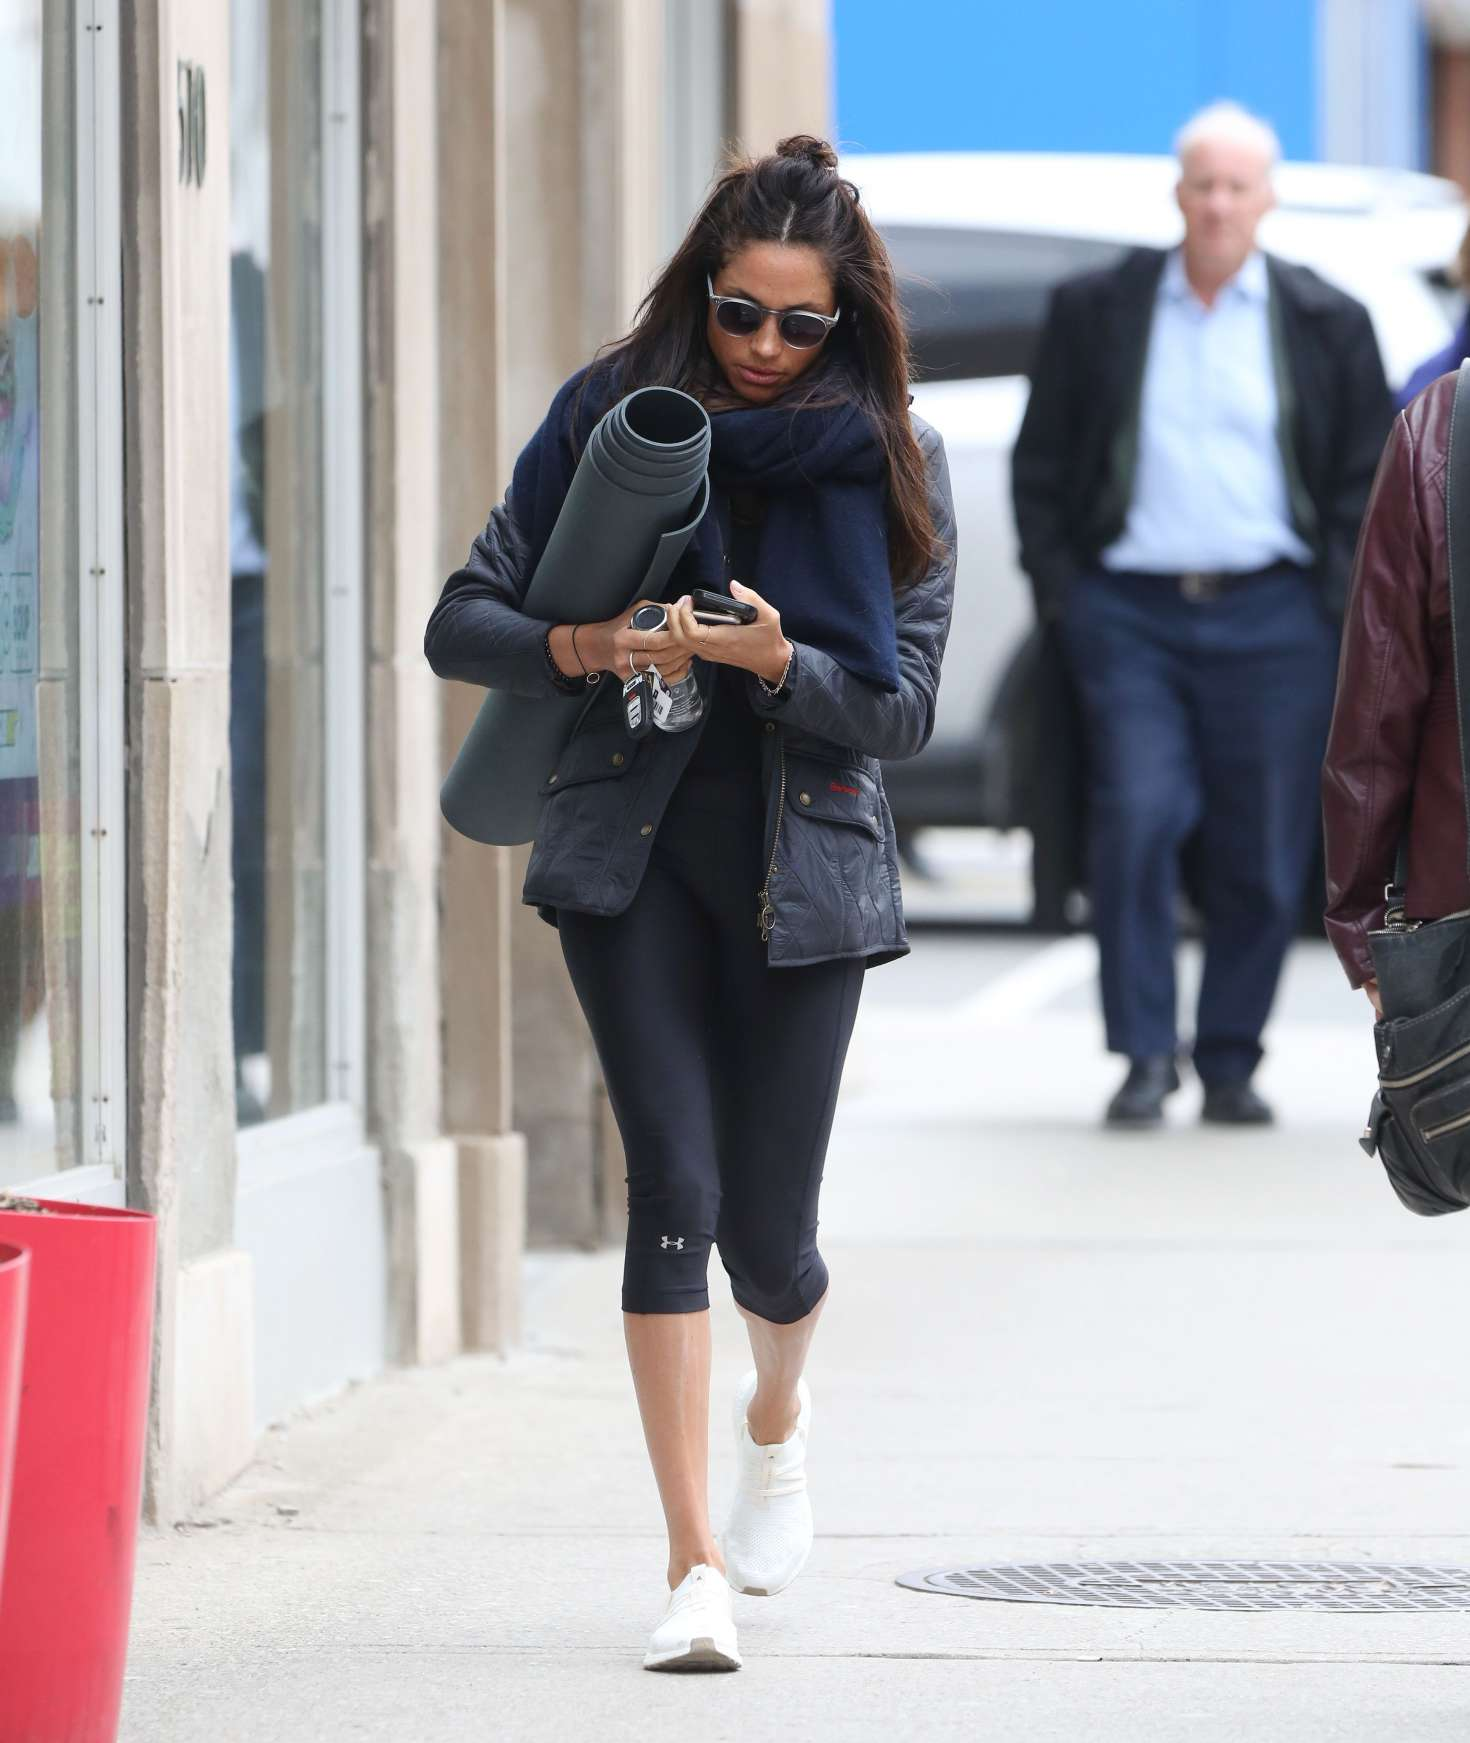 Meghan Markle Photos >> Meghan Markle going to yoga -08 - GotCeleb